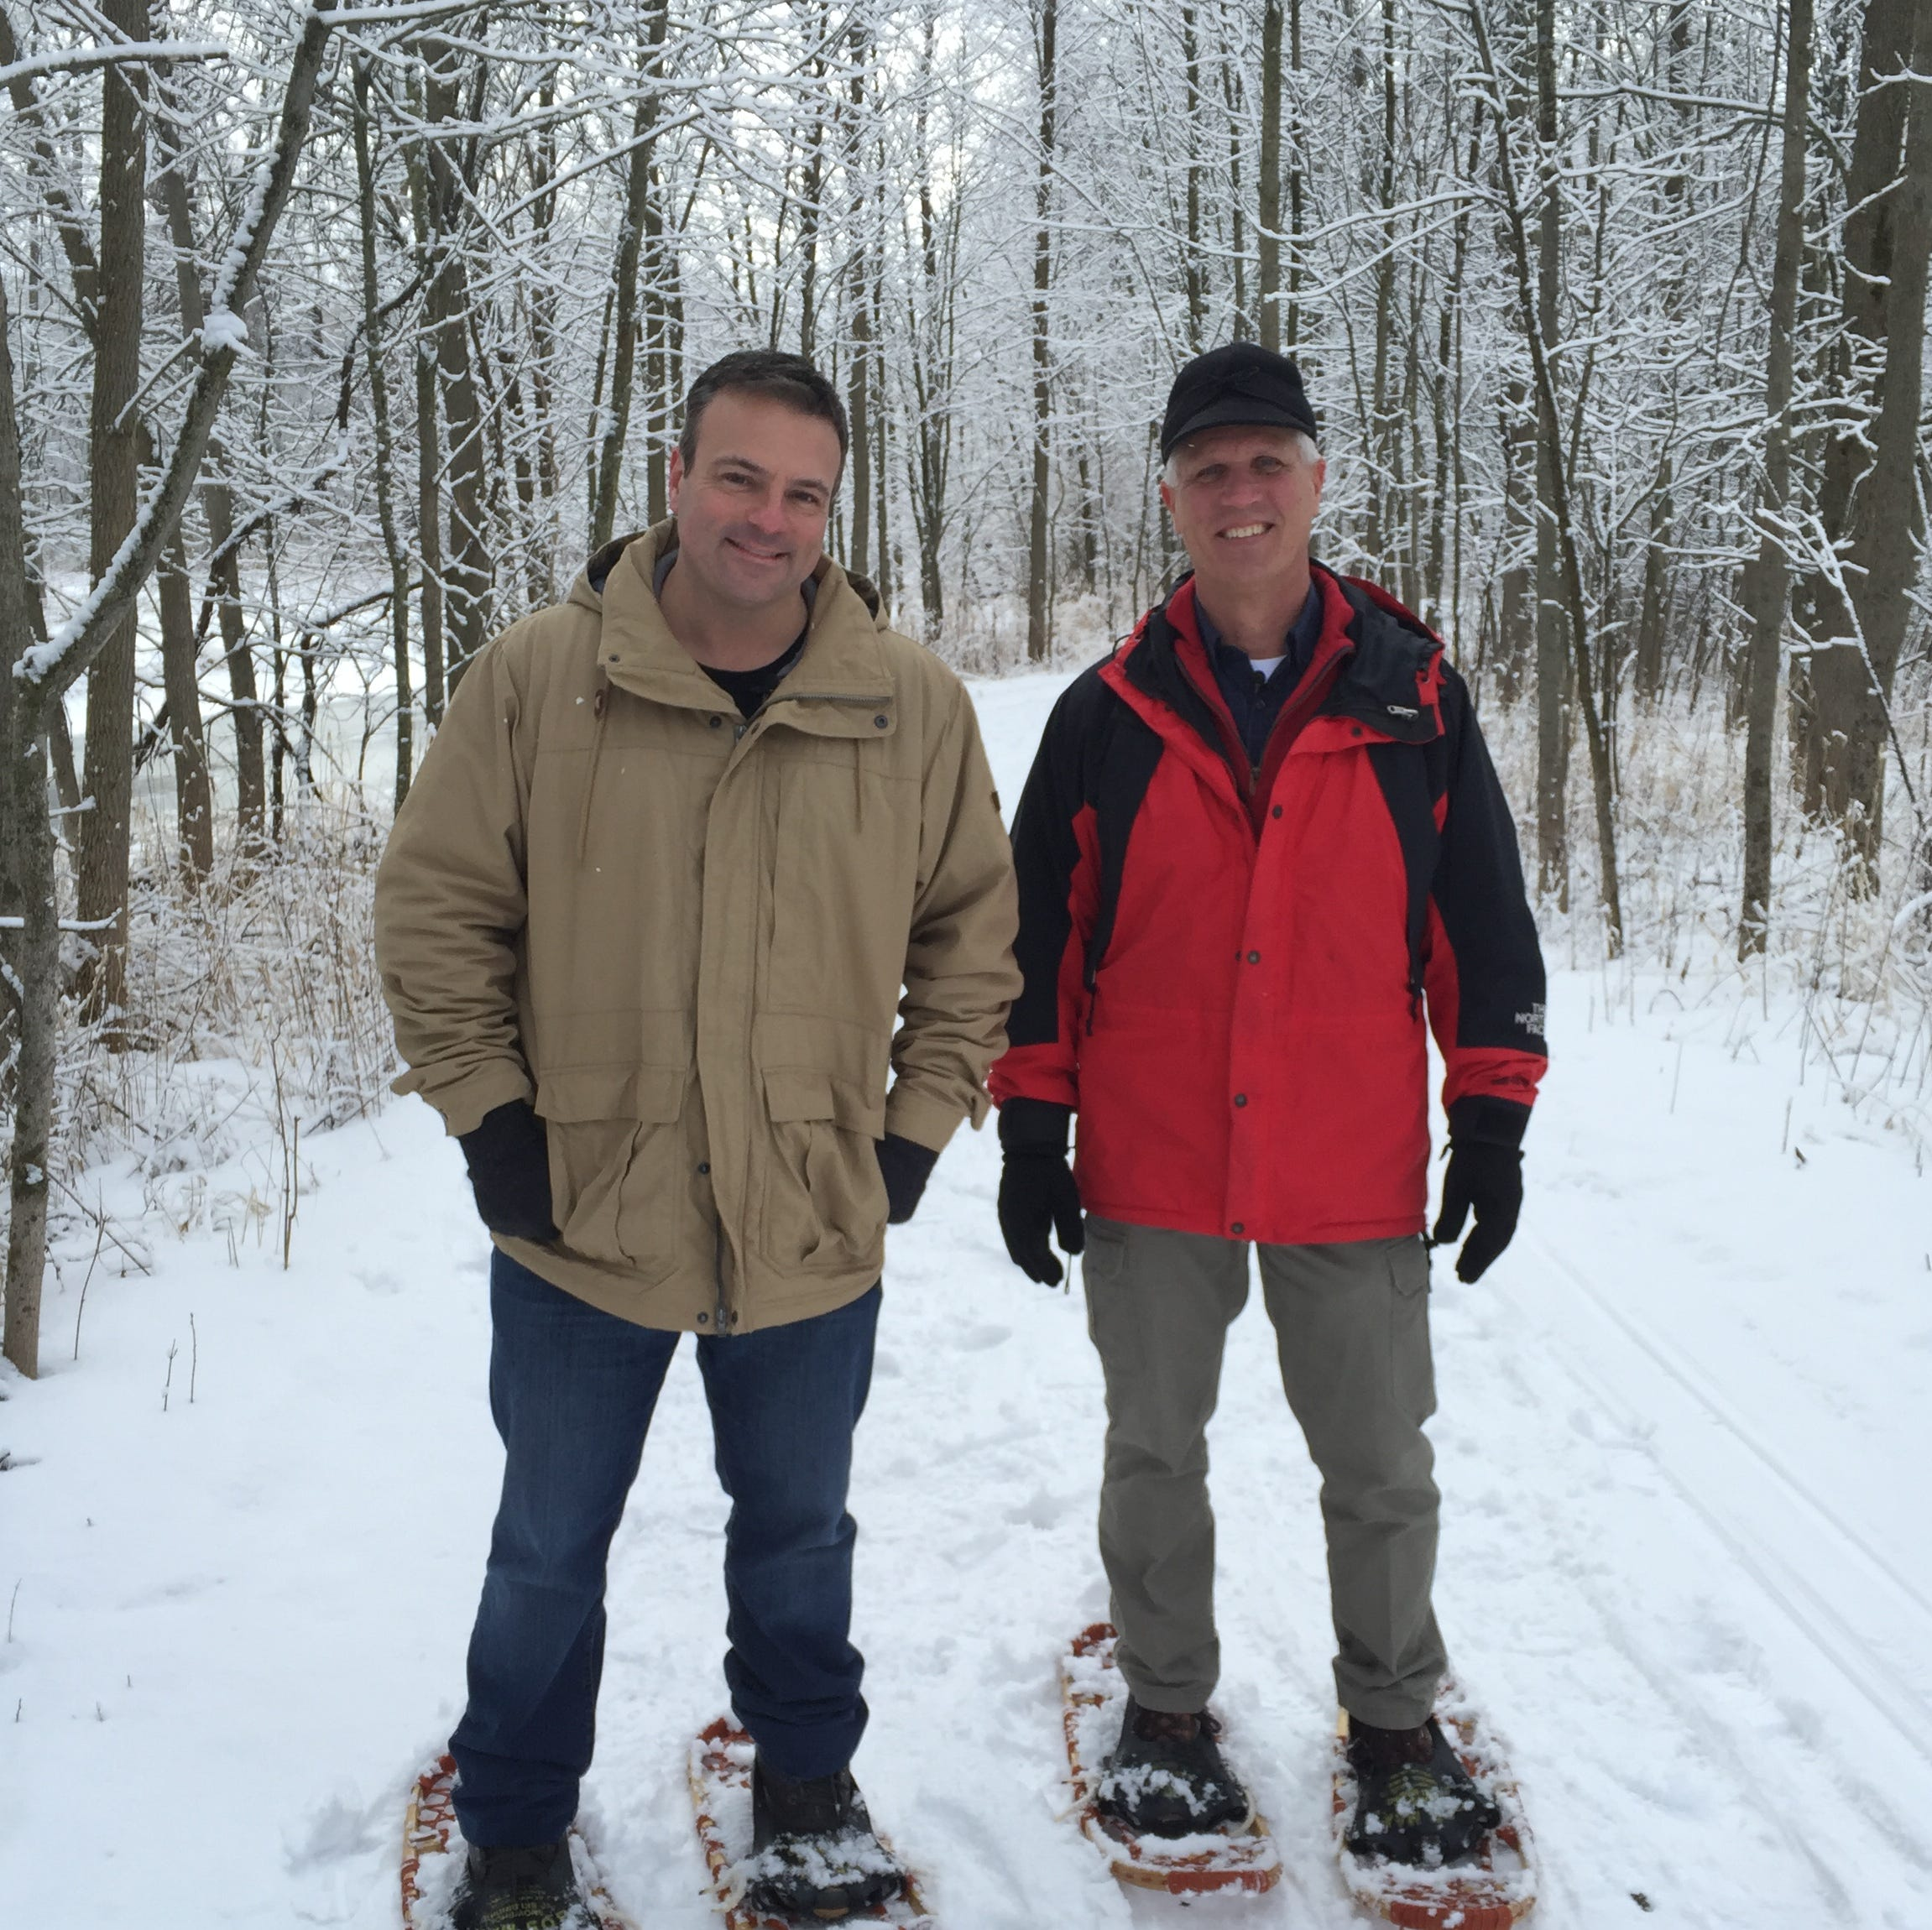 Sheboygan — A Fall & Winter Retreat to air on 'Discover Wisconsin' TV show